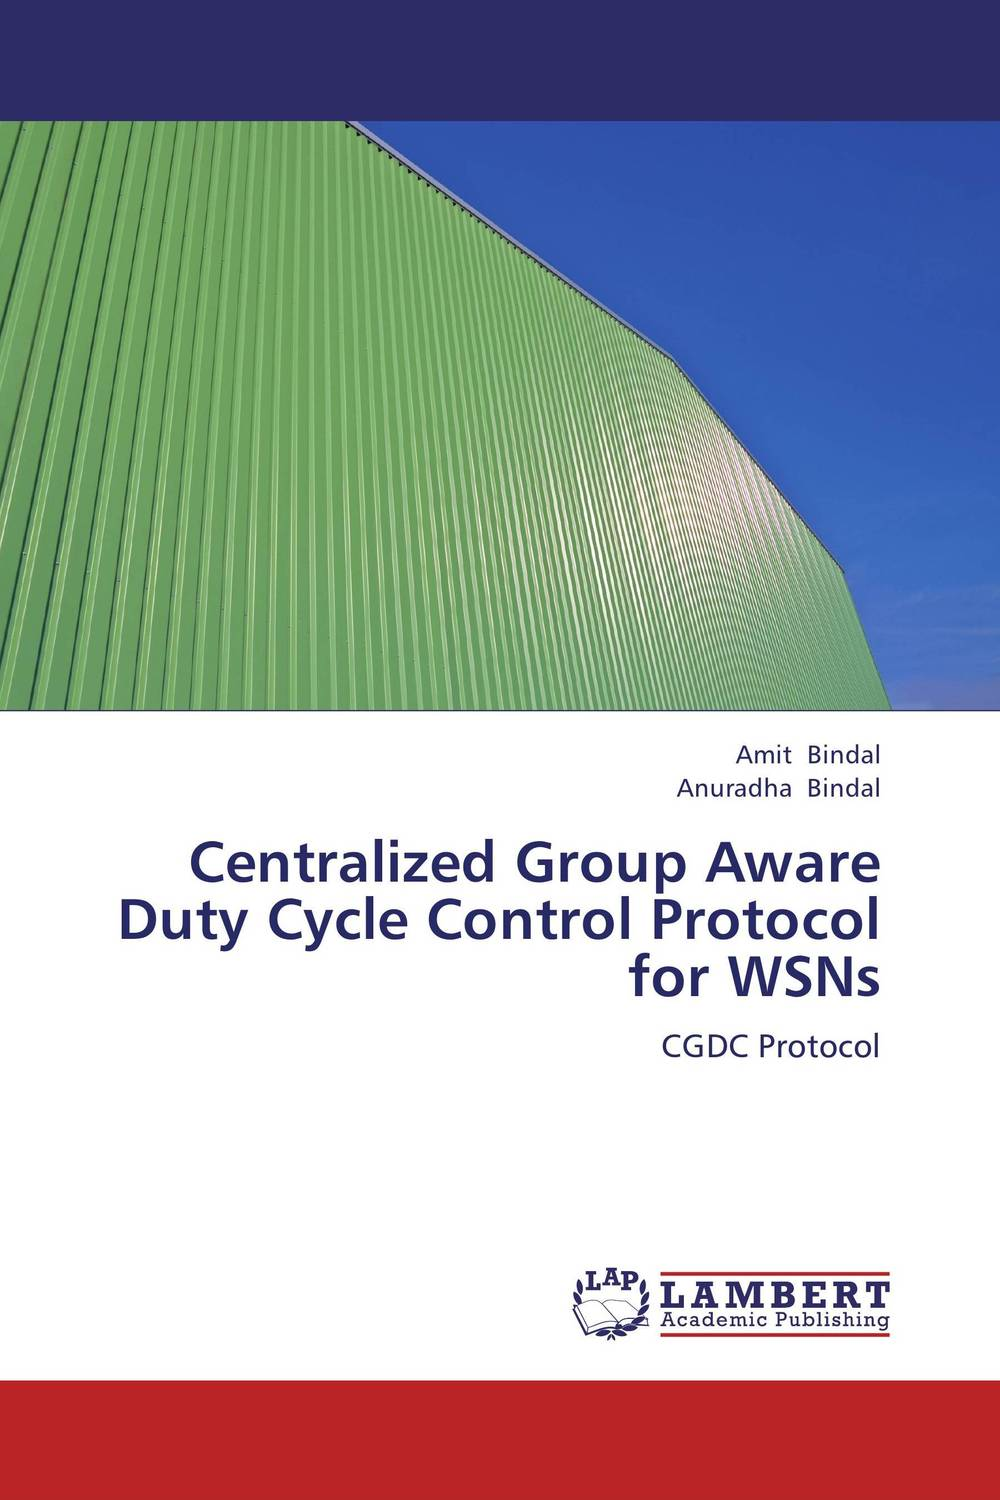 Centralized Group Aware Duty Cycle Control Protocol for WSNs context aware reminder system